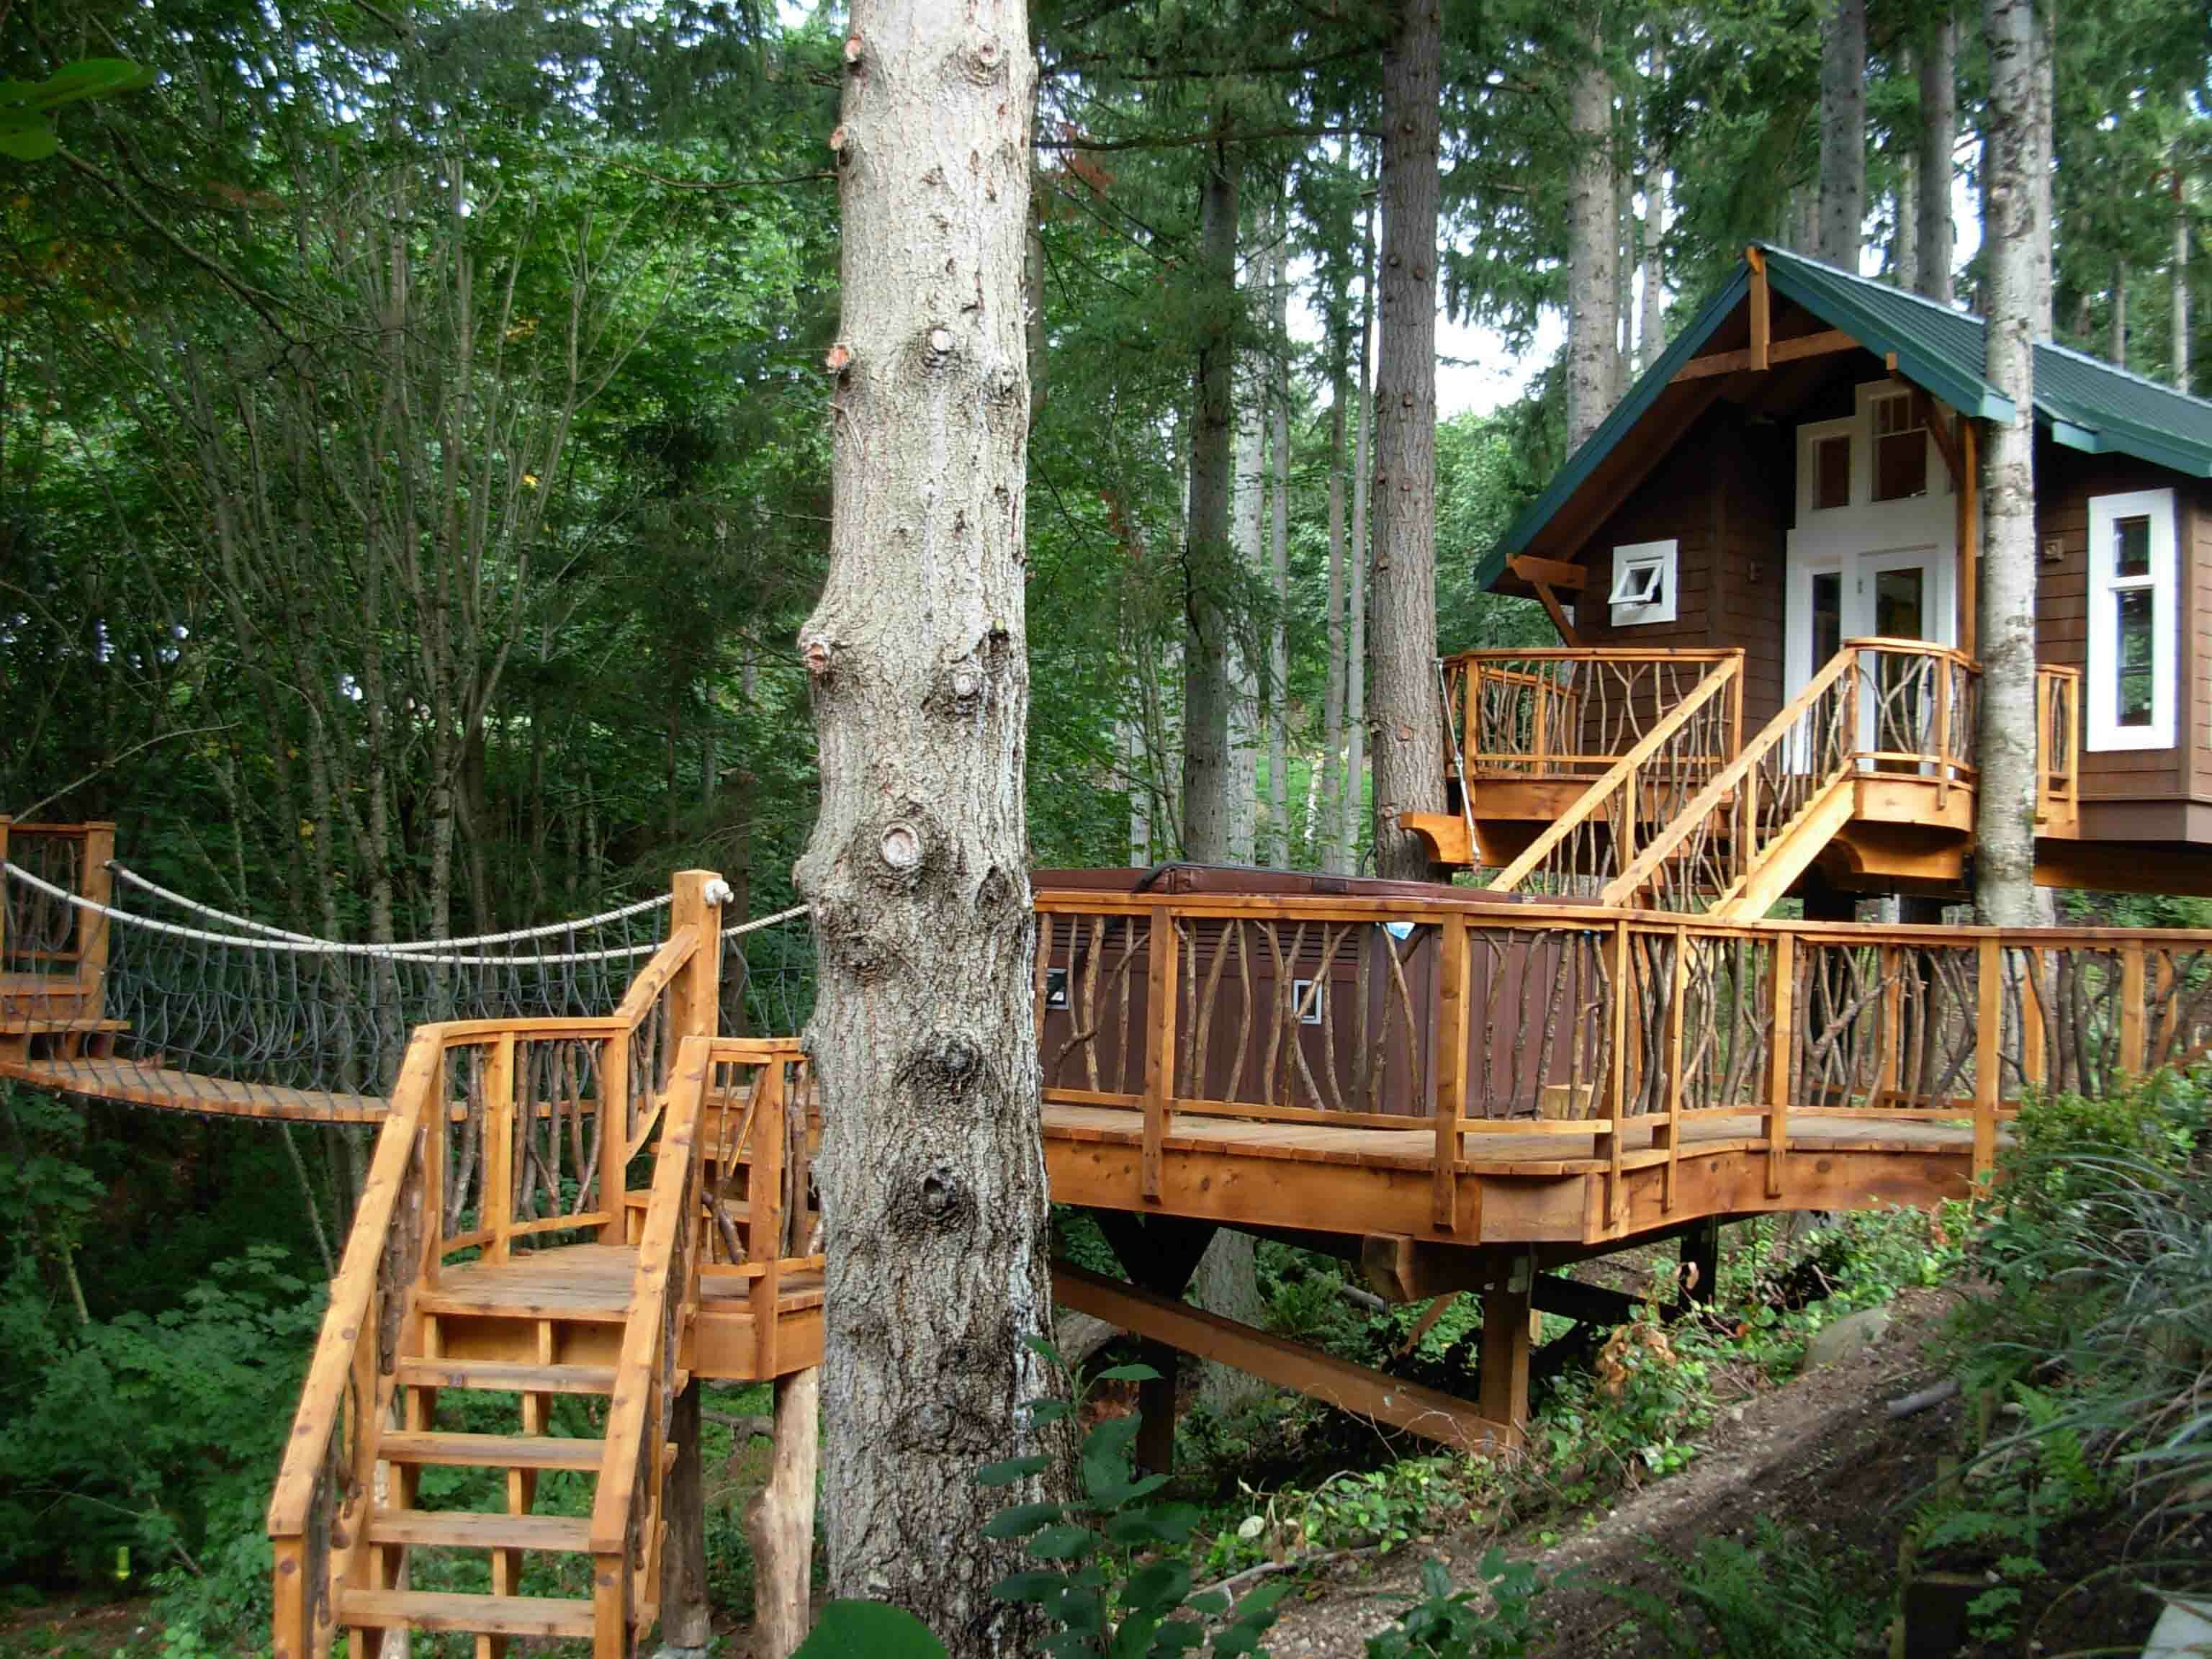 18 Amazing Tree House Designs | MostBeautifulThings on flowers designs, playhouse designs, tree platform design, yurt designs, easy treehouse designs, castle designs, tree mansion, christmas designs, deck designs, tree bed designs, bamboo designs, tree houses for adults, tree houses for girls, living room designs, model rocket designs, farmhouse designs, tree houses to live in, pool designs, inside treehouse designs, fire pit designs,